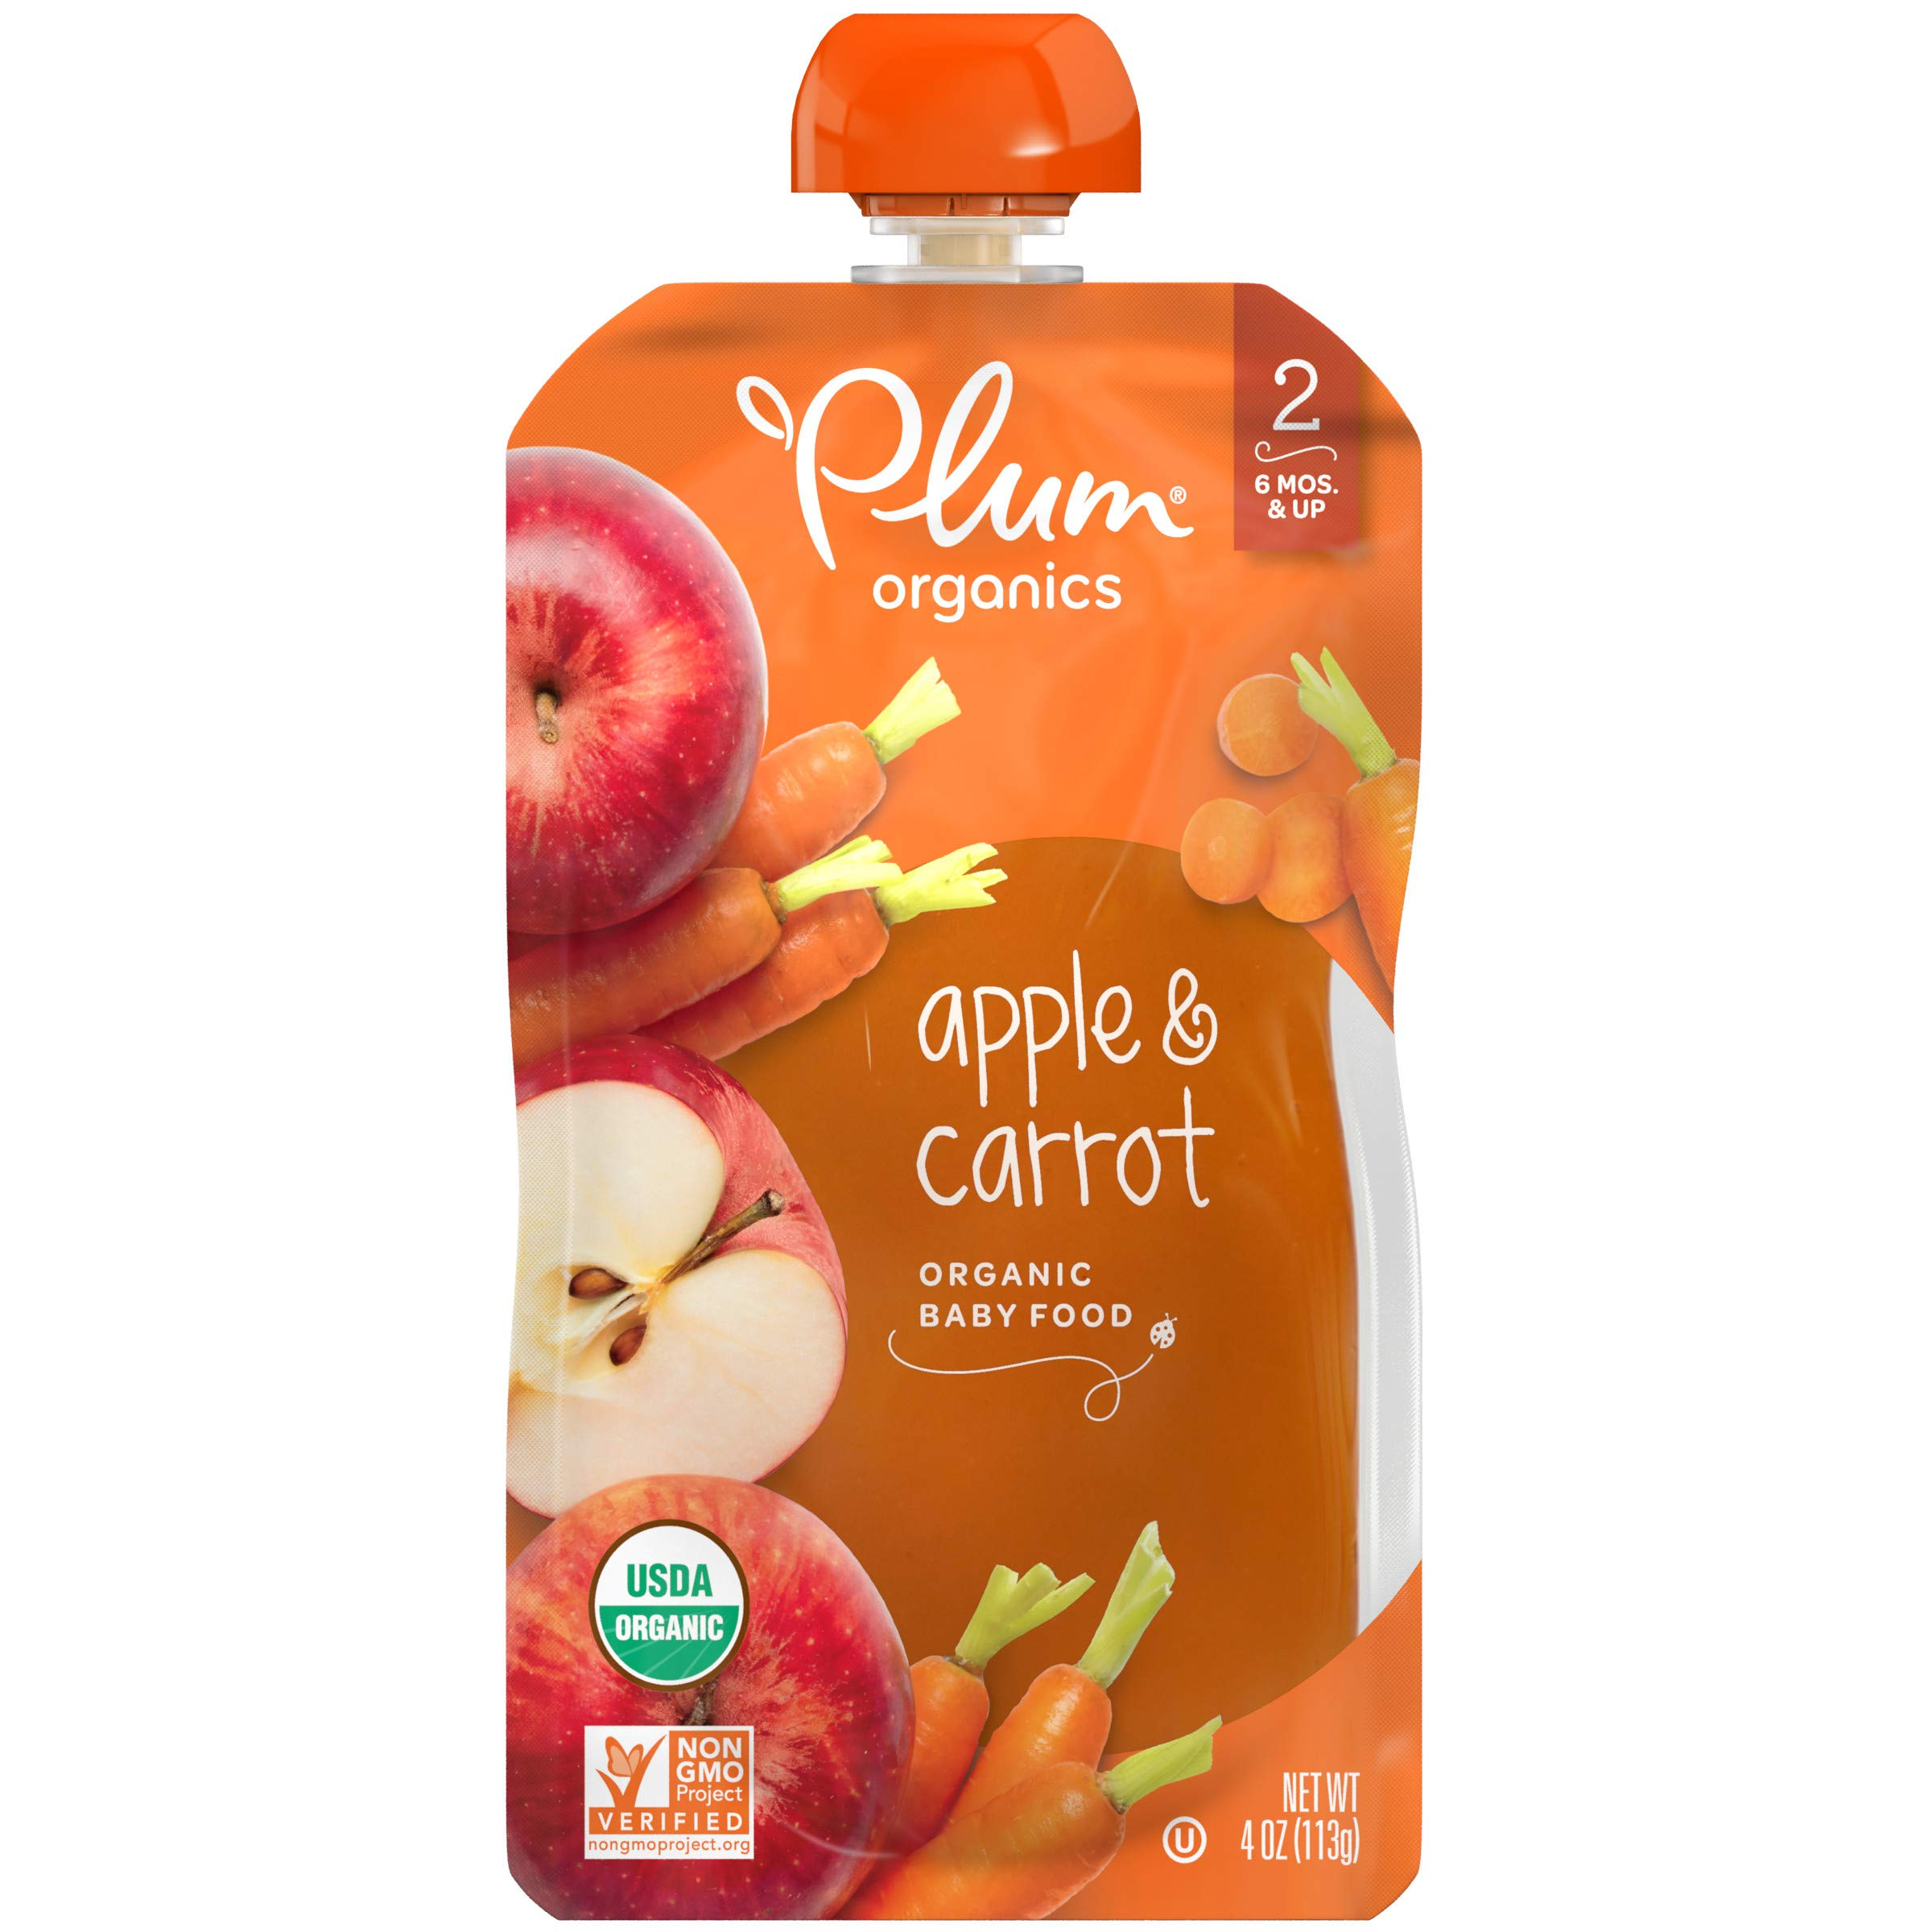 Plum Organics Stage 2 Organic Baby Food, Pear & Mango, 4 Ounce Pouch (Pack of 12)